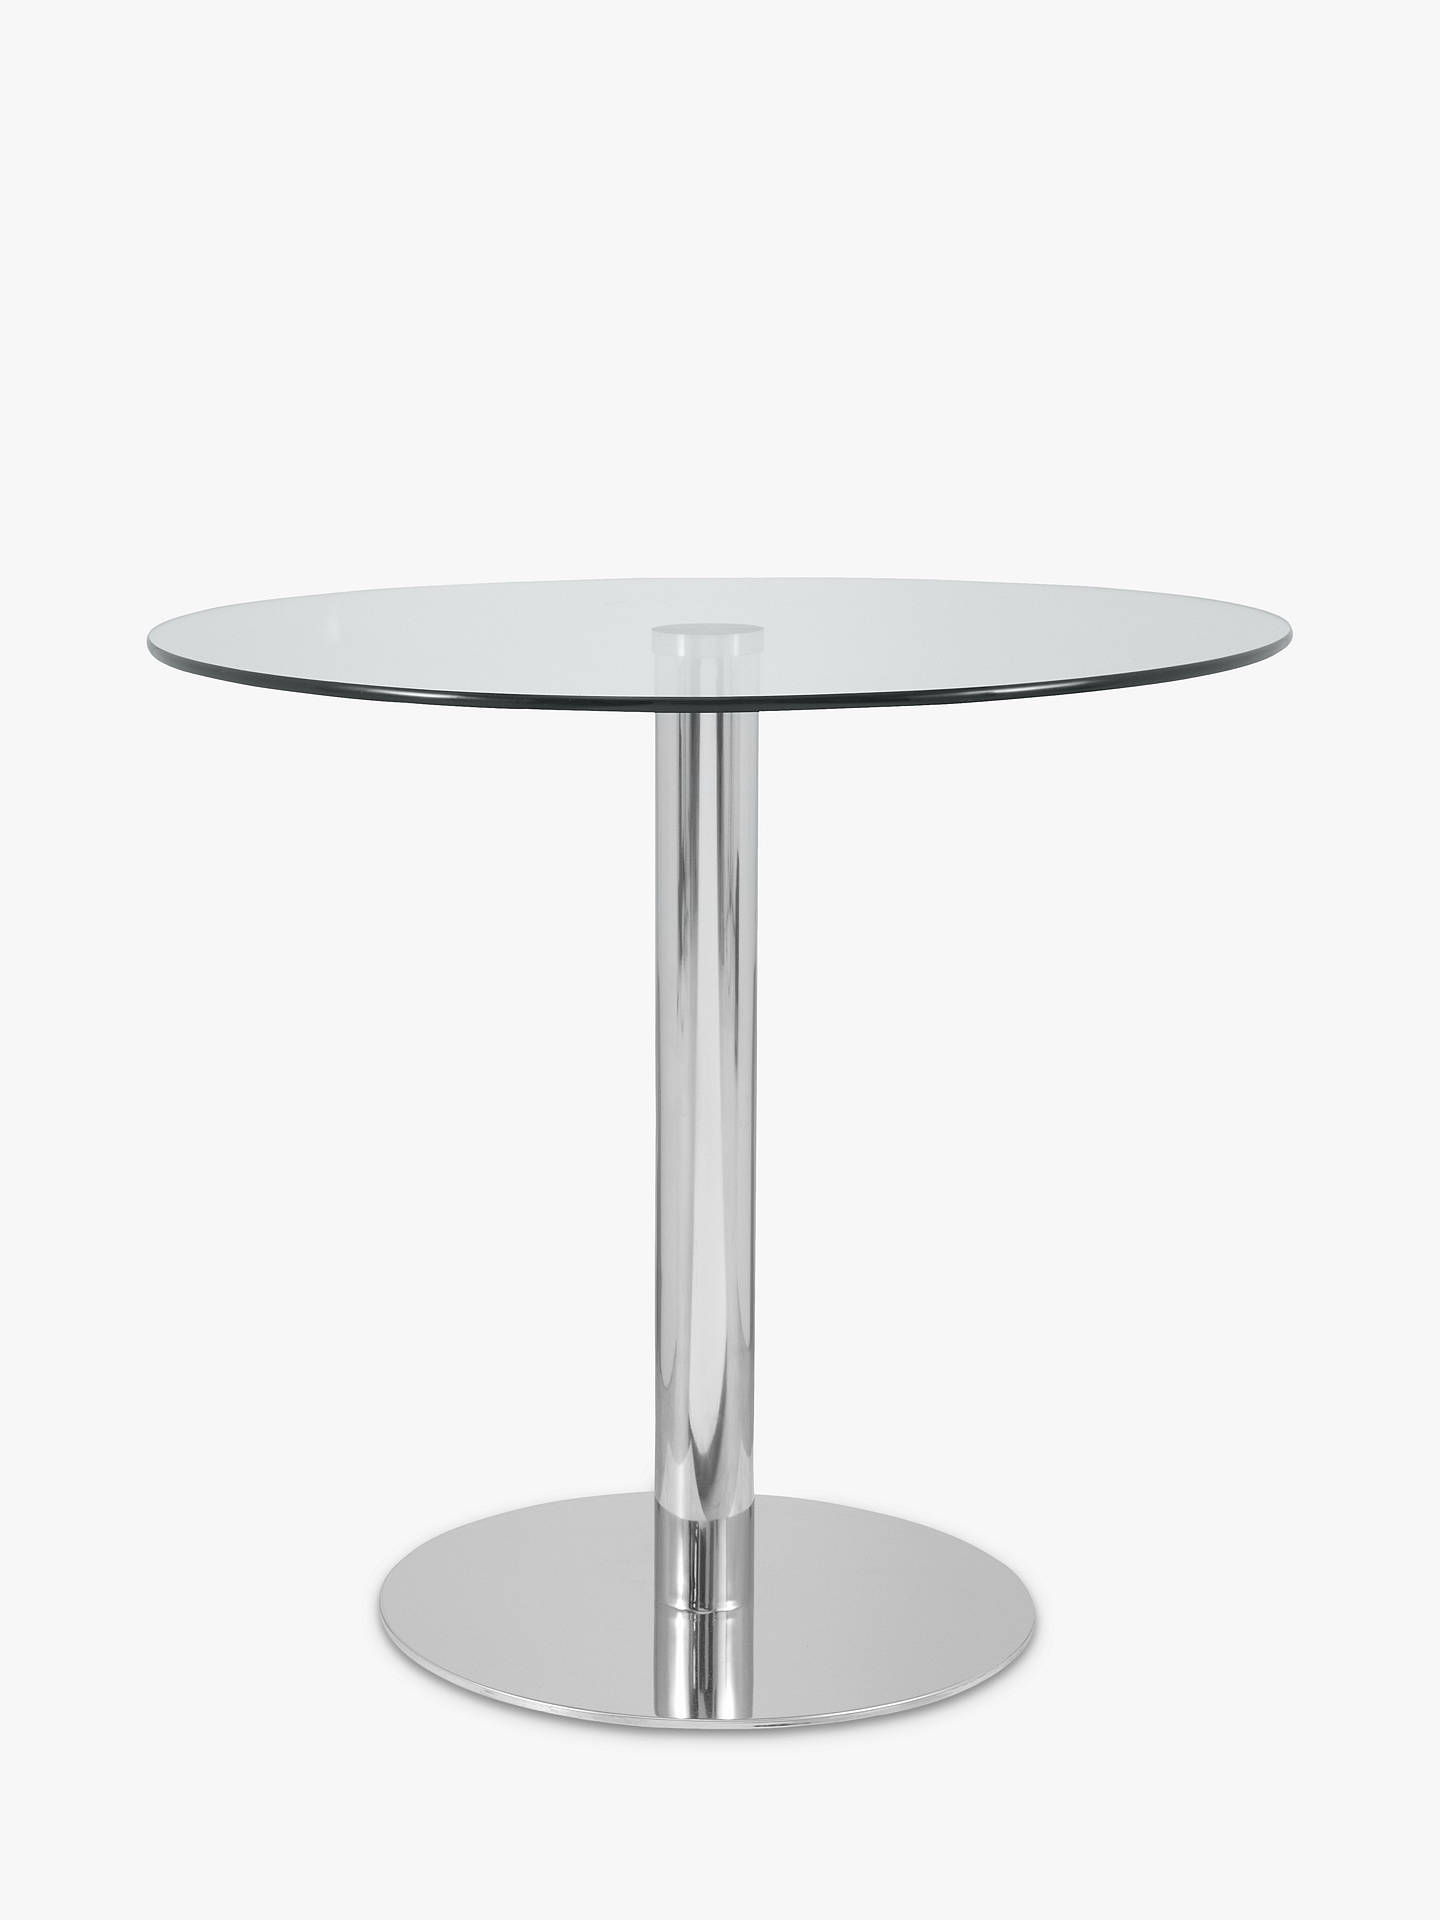 Buy John Lewis & Partners Enzo 2-Seater Round Glass Top Dining Table Online at johnlewis.com